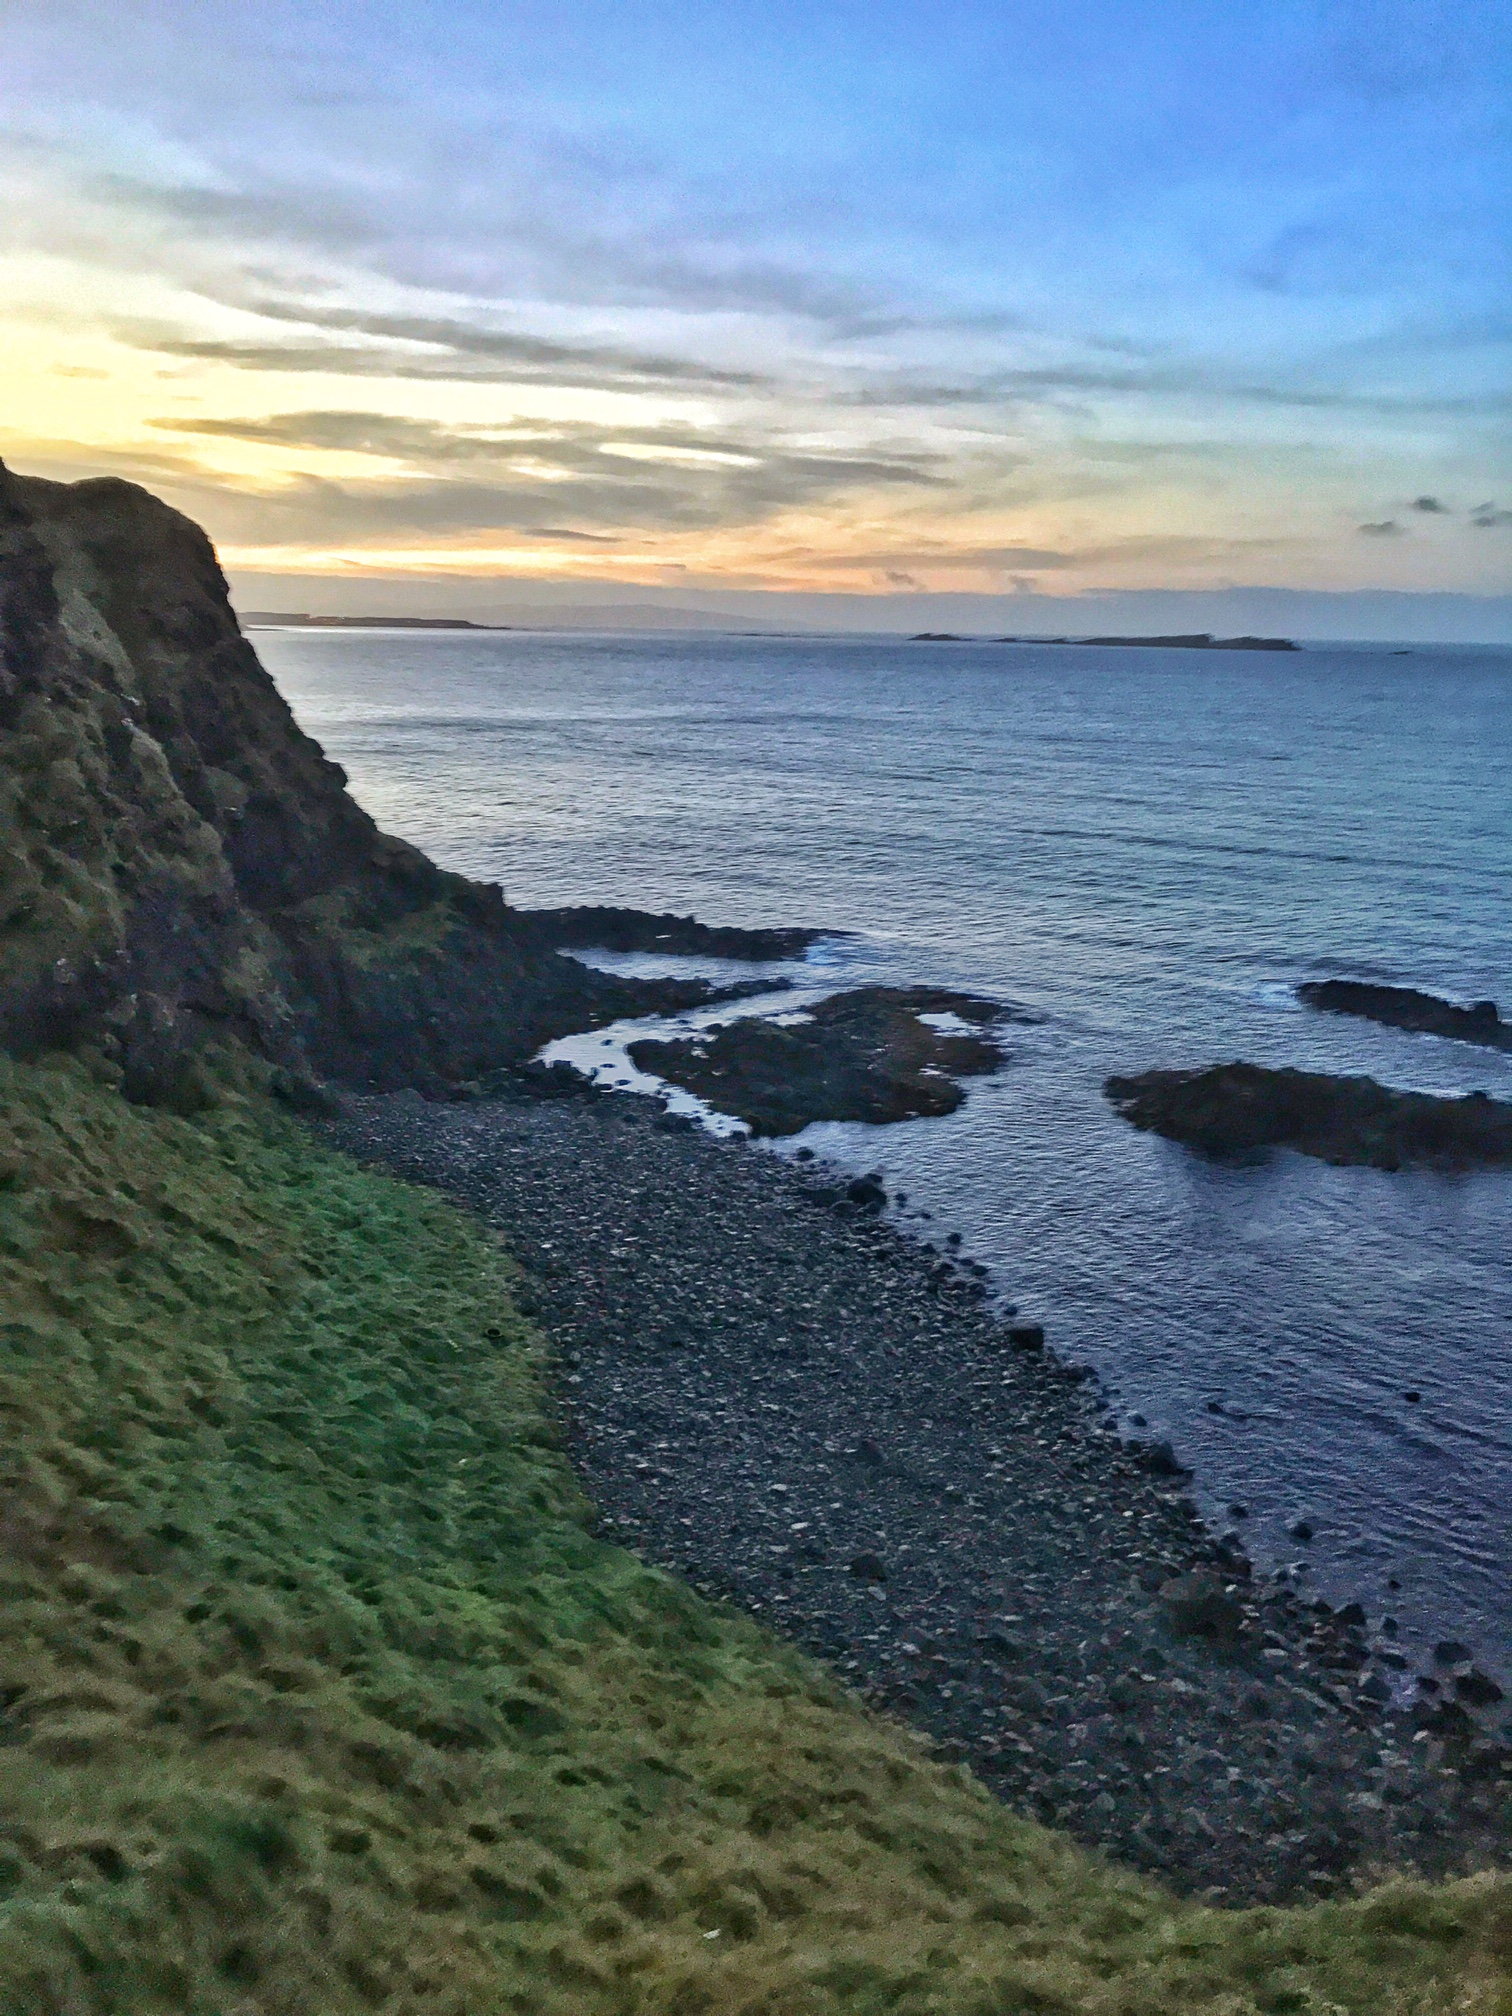 Like the nearby Giant's Causeway, Dunluce Castle has some great coastal views.